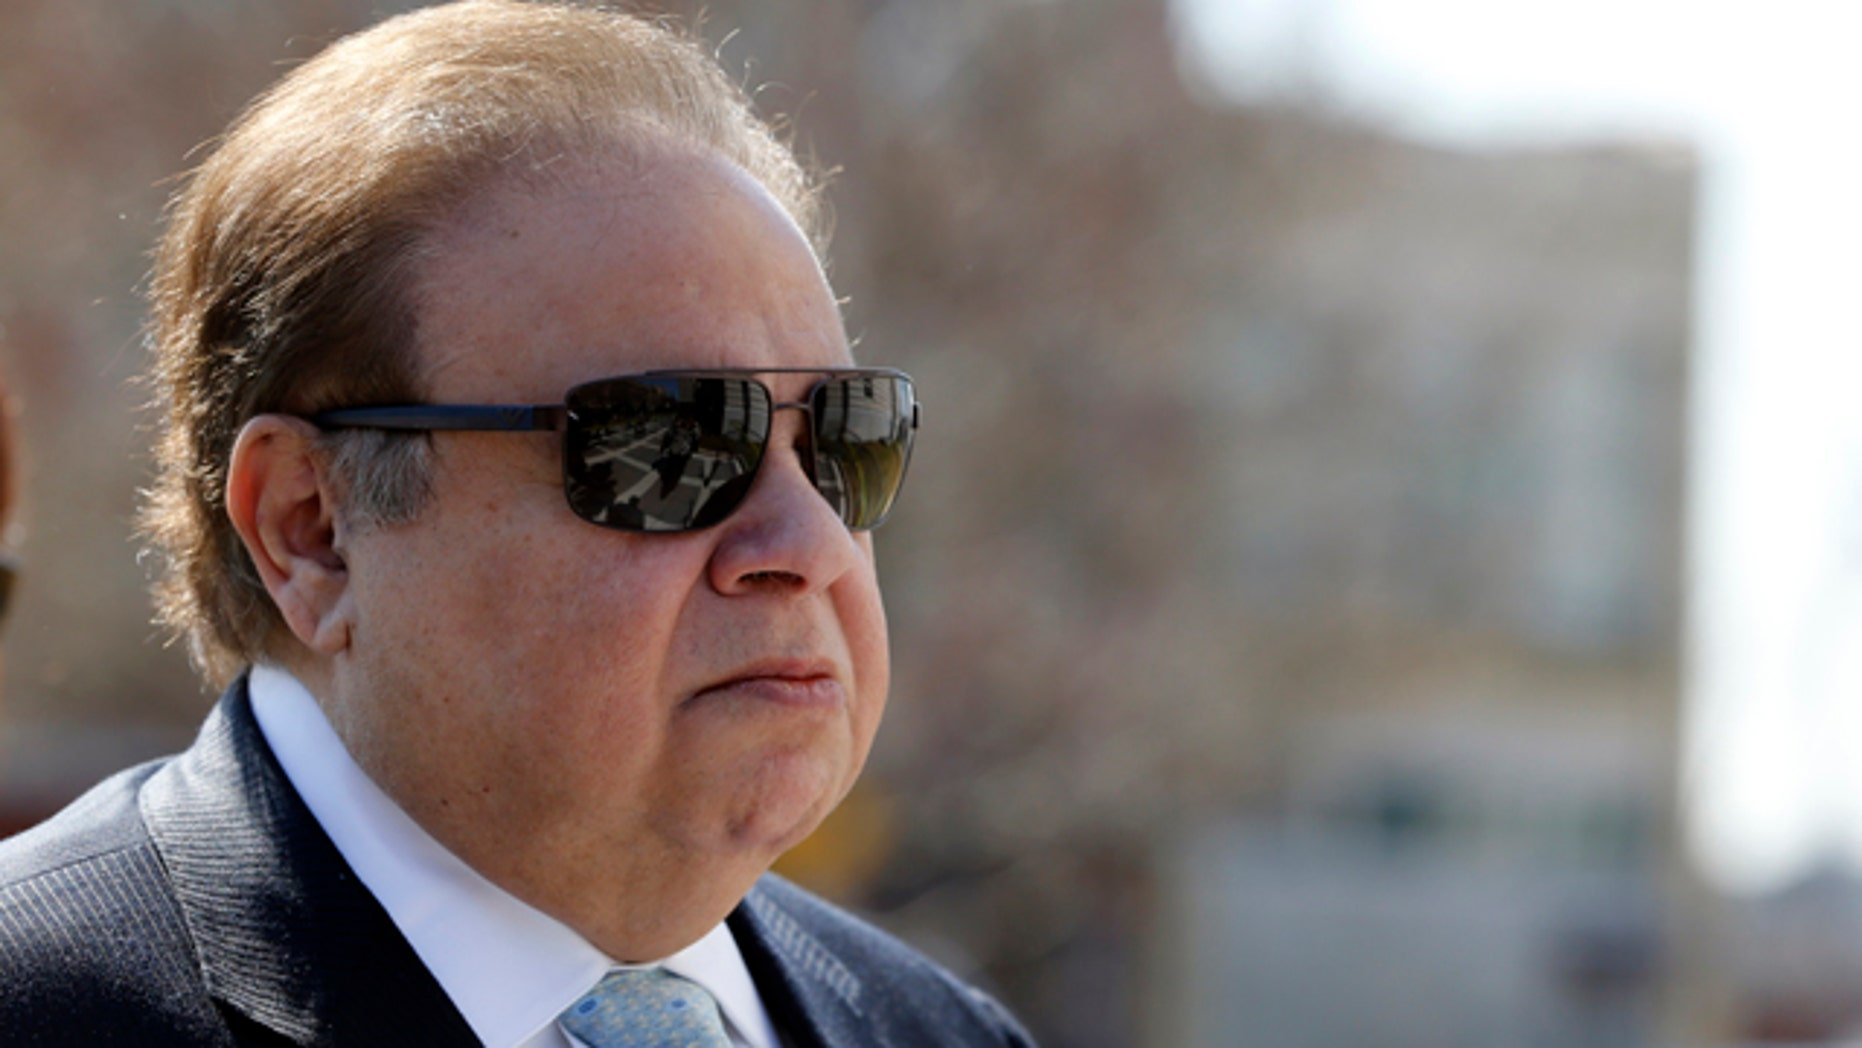 FILE - In this April 2, 2015, file photo, Dr. Salomon Melgen arrives at the Martin Luther King Jr. Federal Courthouse for his arraignment, in Newark, N.J. (AP Photo/Julio Cortez, File)